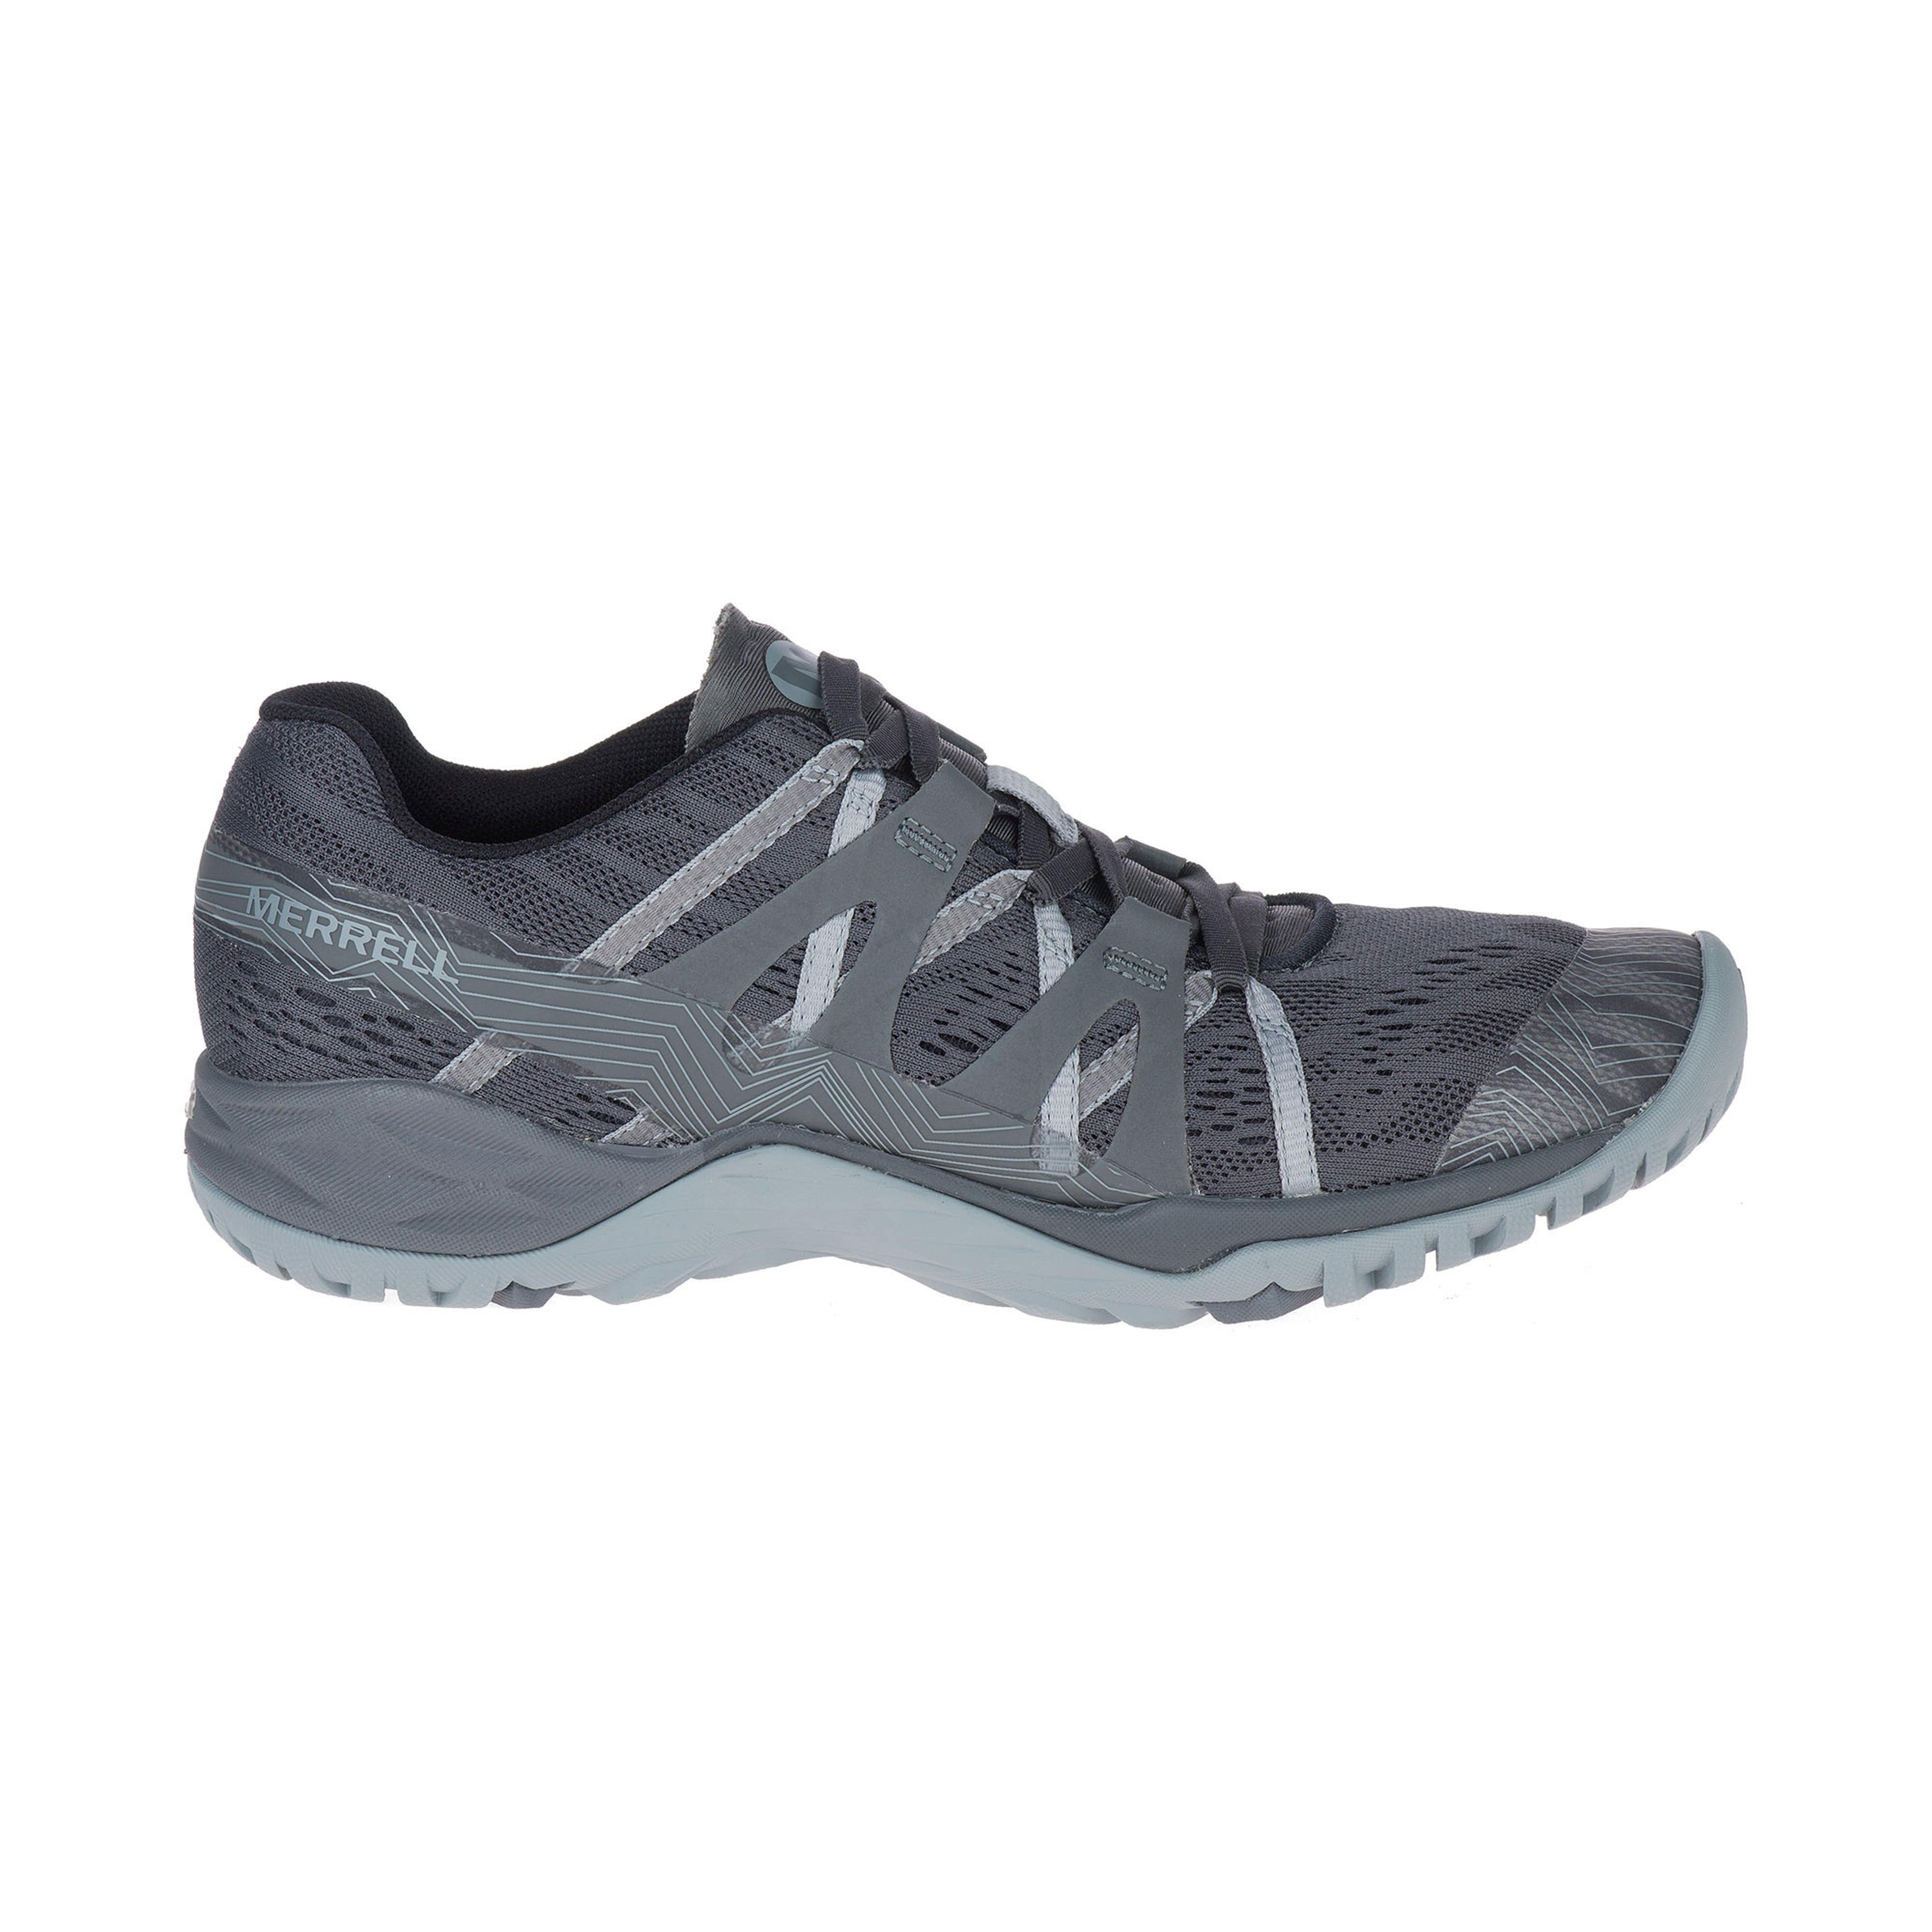 b9274543687 Merrell Women s Siren Hex Q2 E-mesh Hiking Shoes